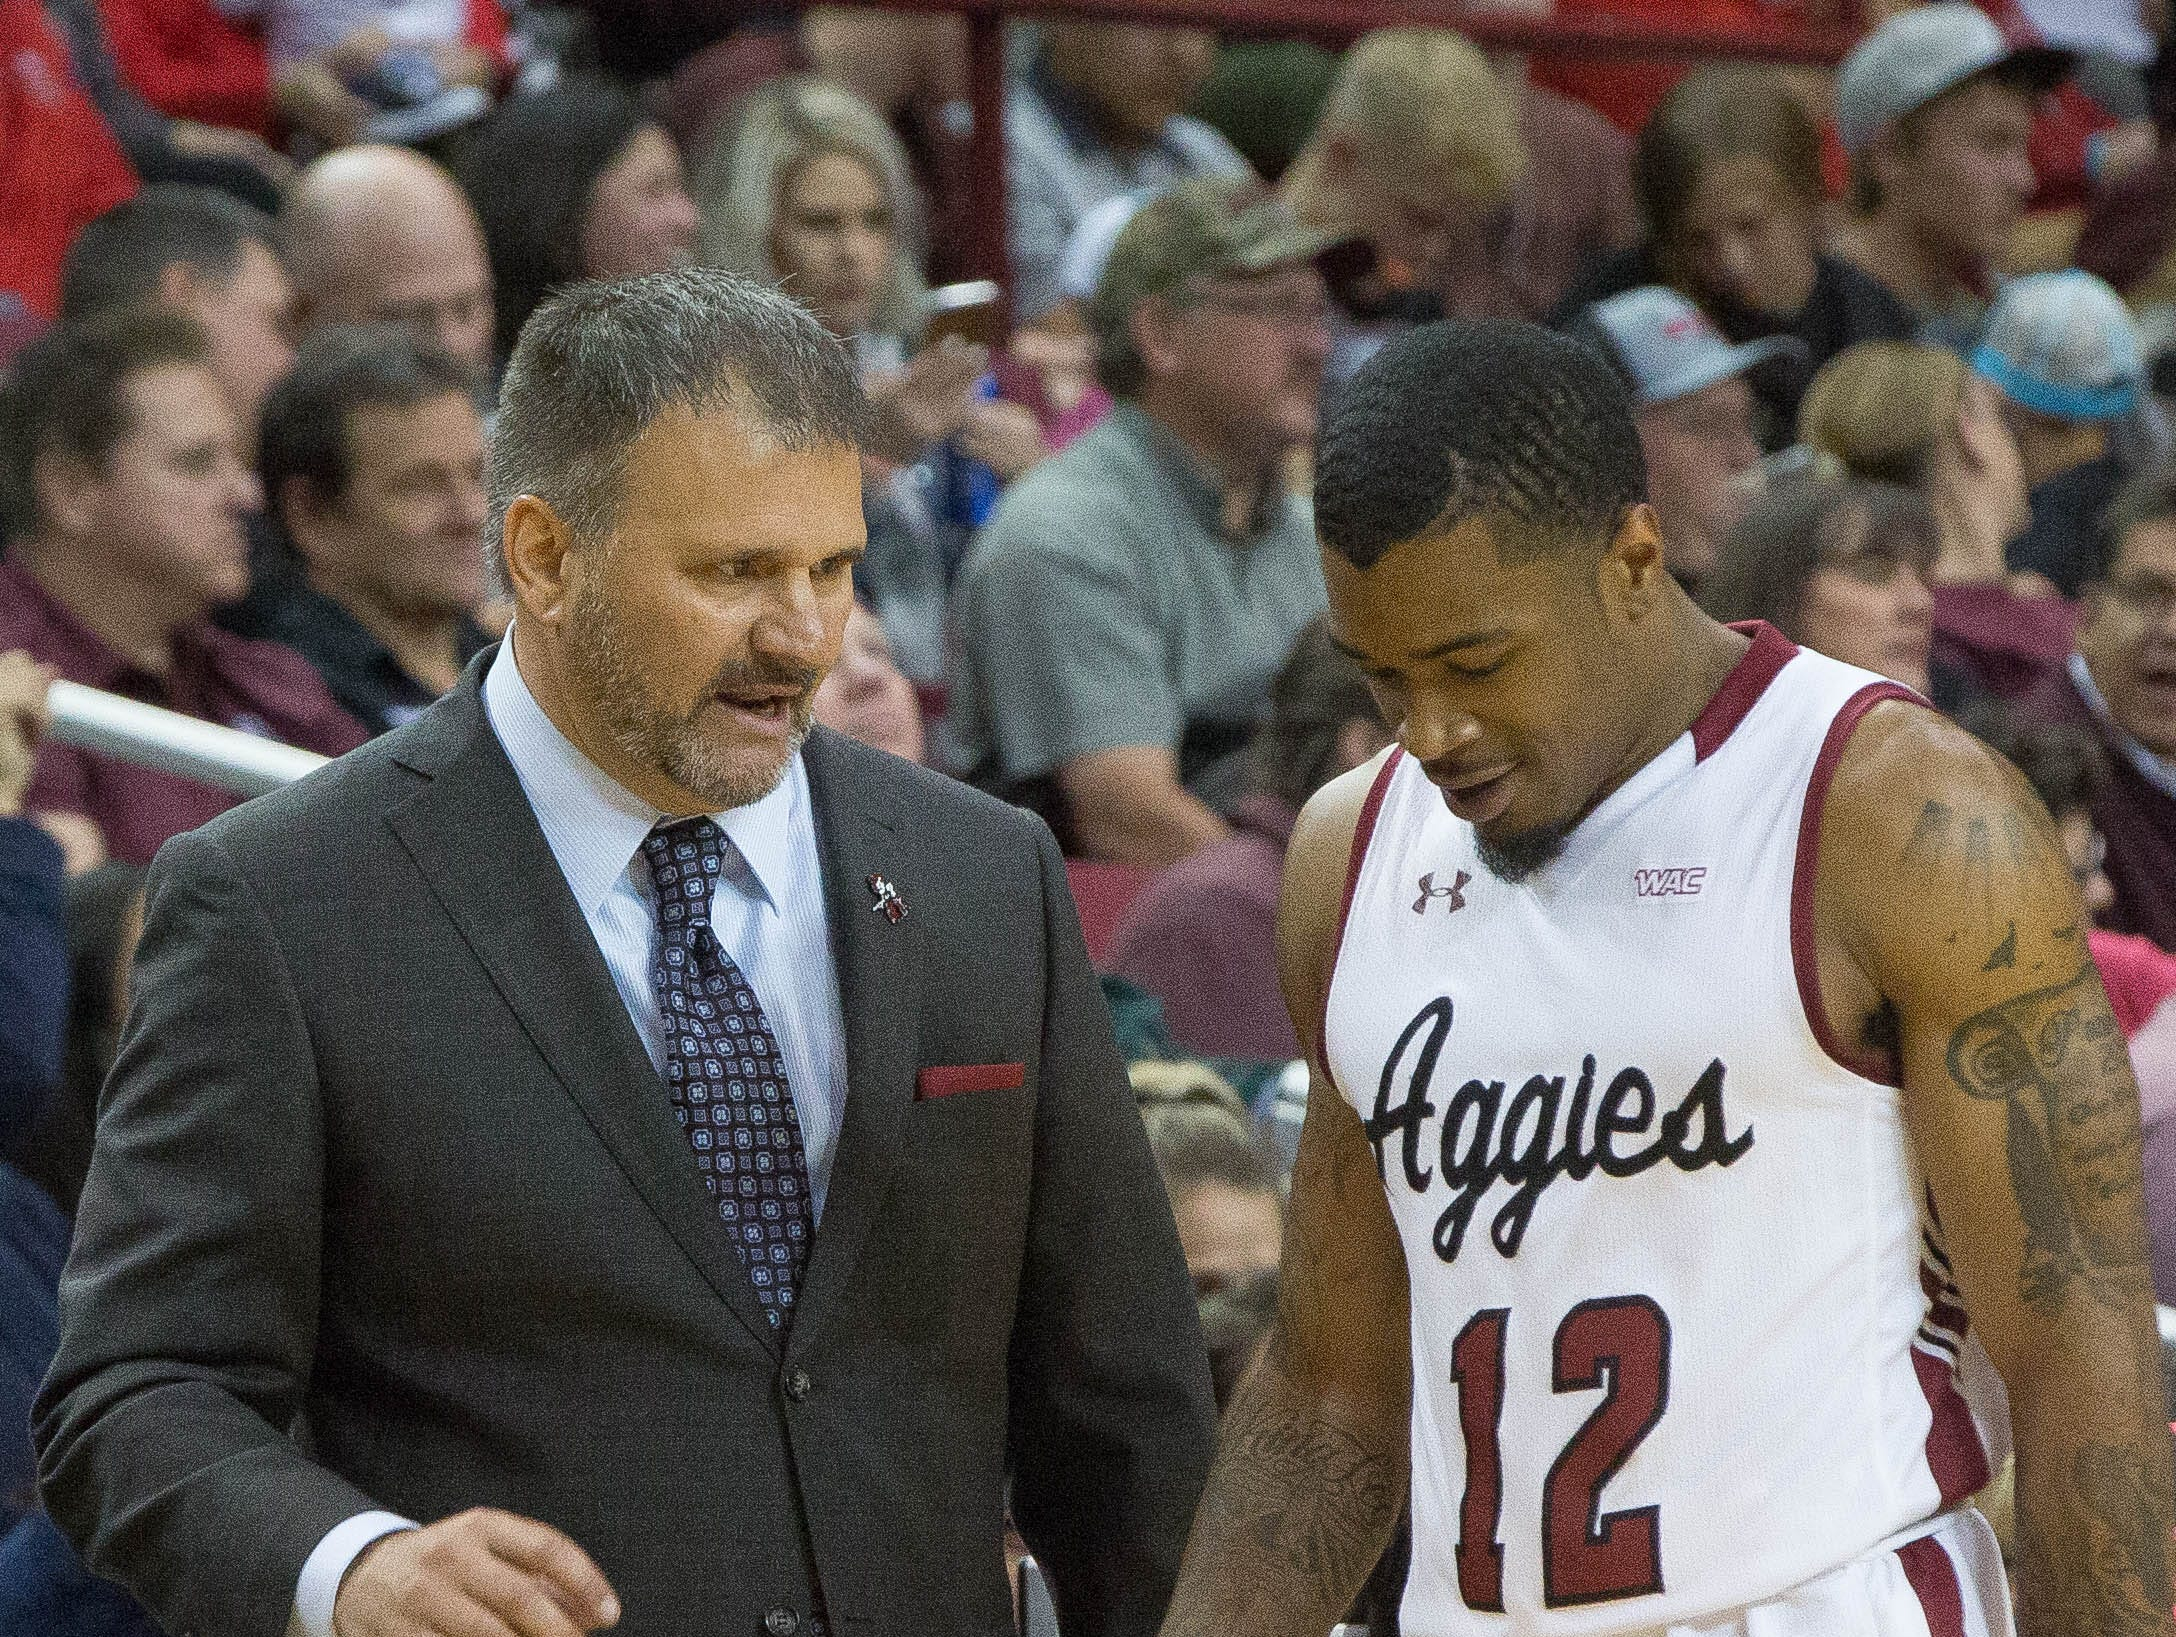 Chris Jans, headcoach at New Mexico State University talks with AJ Harris during the final minutes of the  NMSU, UNM game. NMSU  beat the University of New Mexico Tuesday December 4, 2018 at the Pan American Center, 100 to 65.